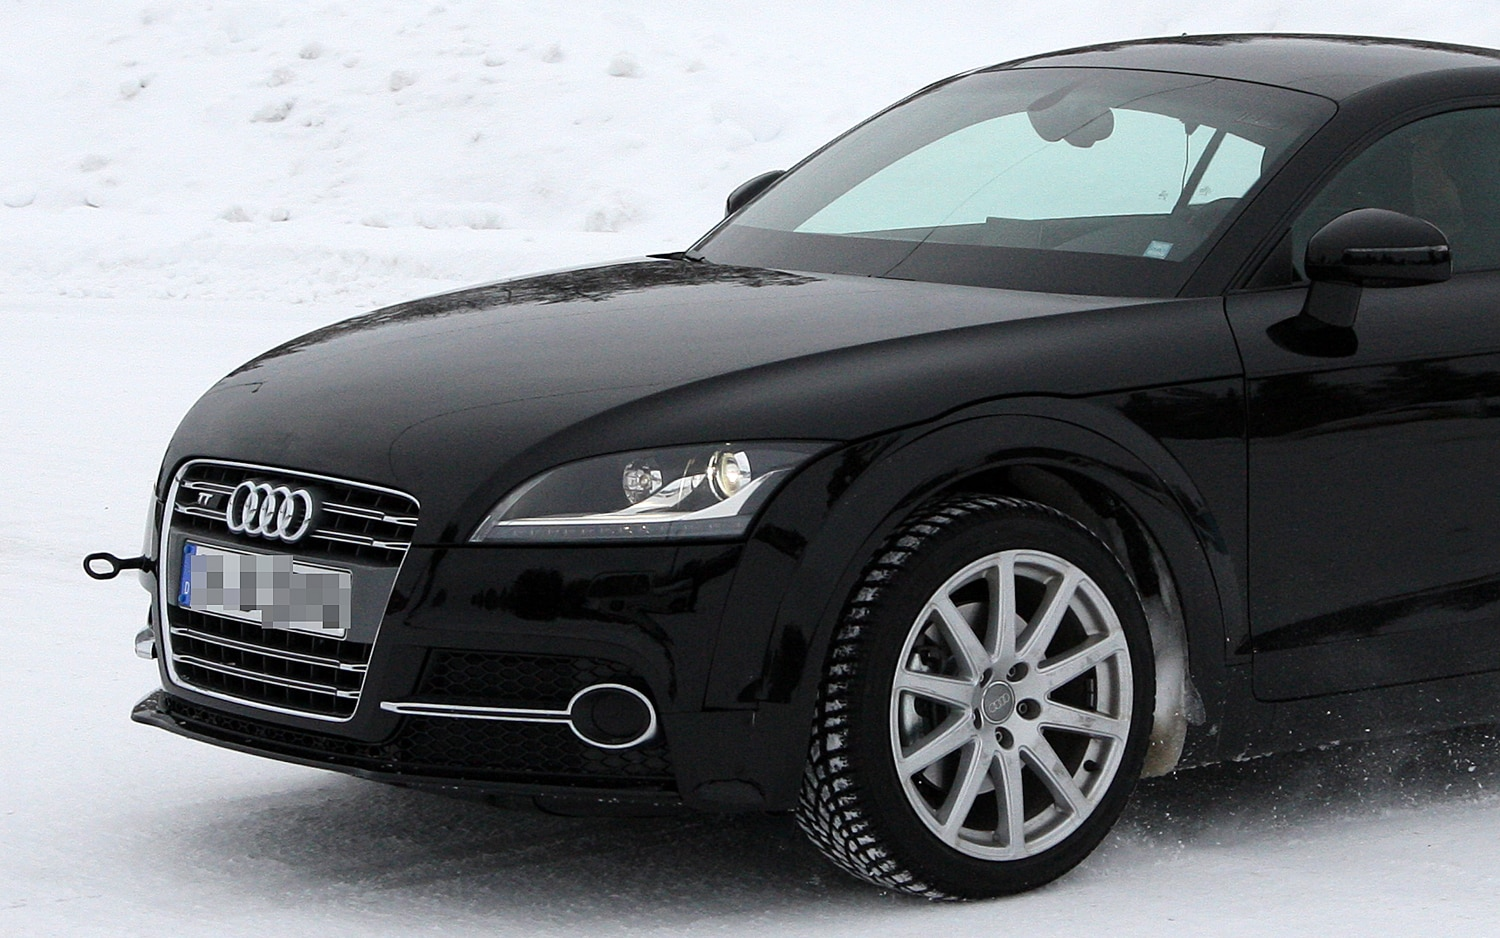 2013 Audi TT Test Mule Front Three Quarter 01 Crop